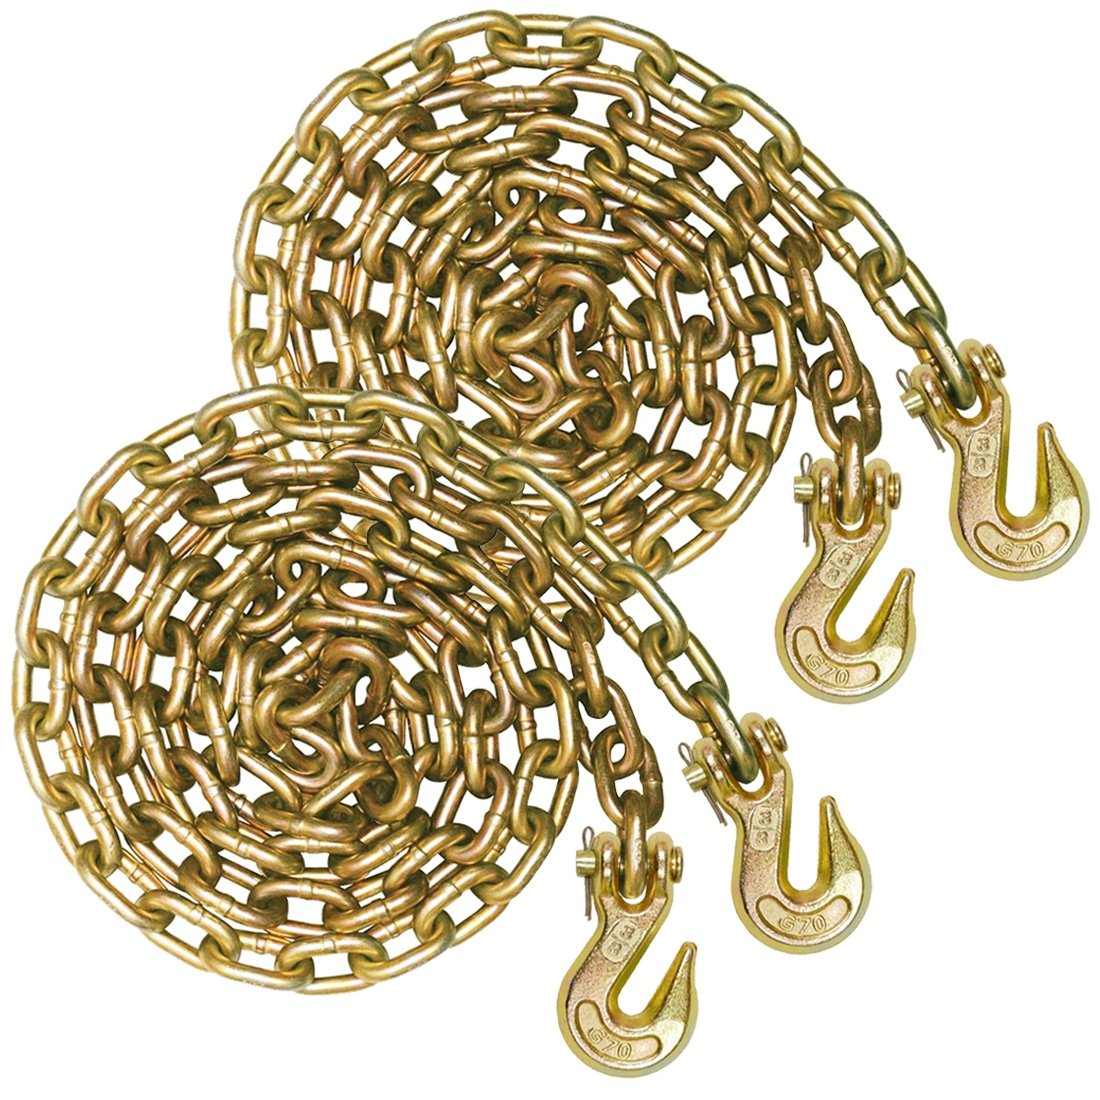 Grade 80-1//2 Inch x 10 Foot VULCAN Chain and Binder Kit Tie Down Loads Weighing Up to 48,000 Pounds